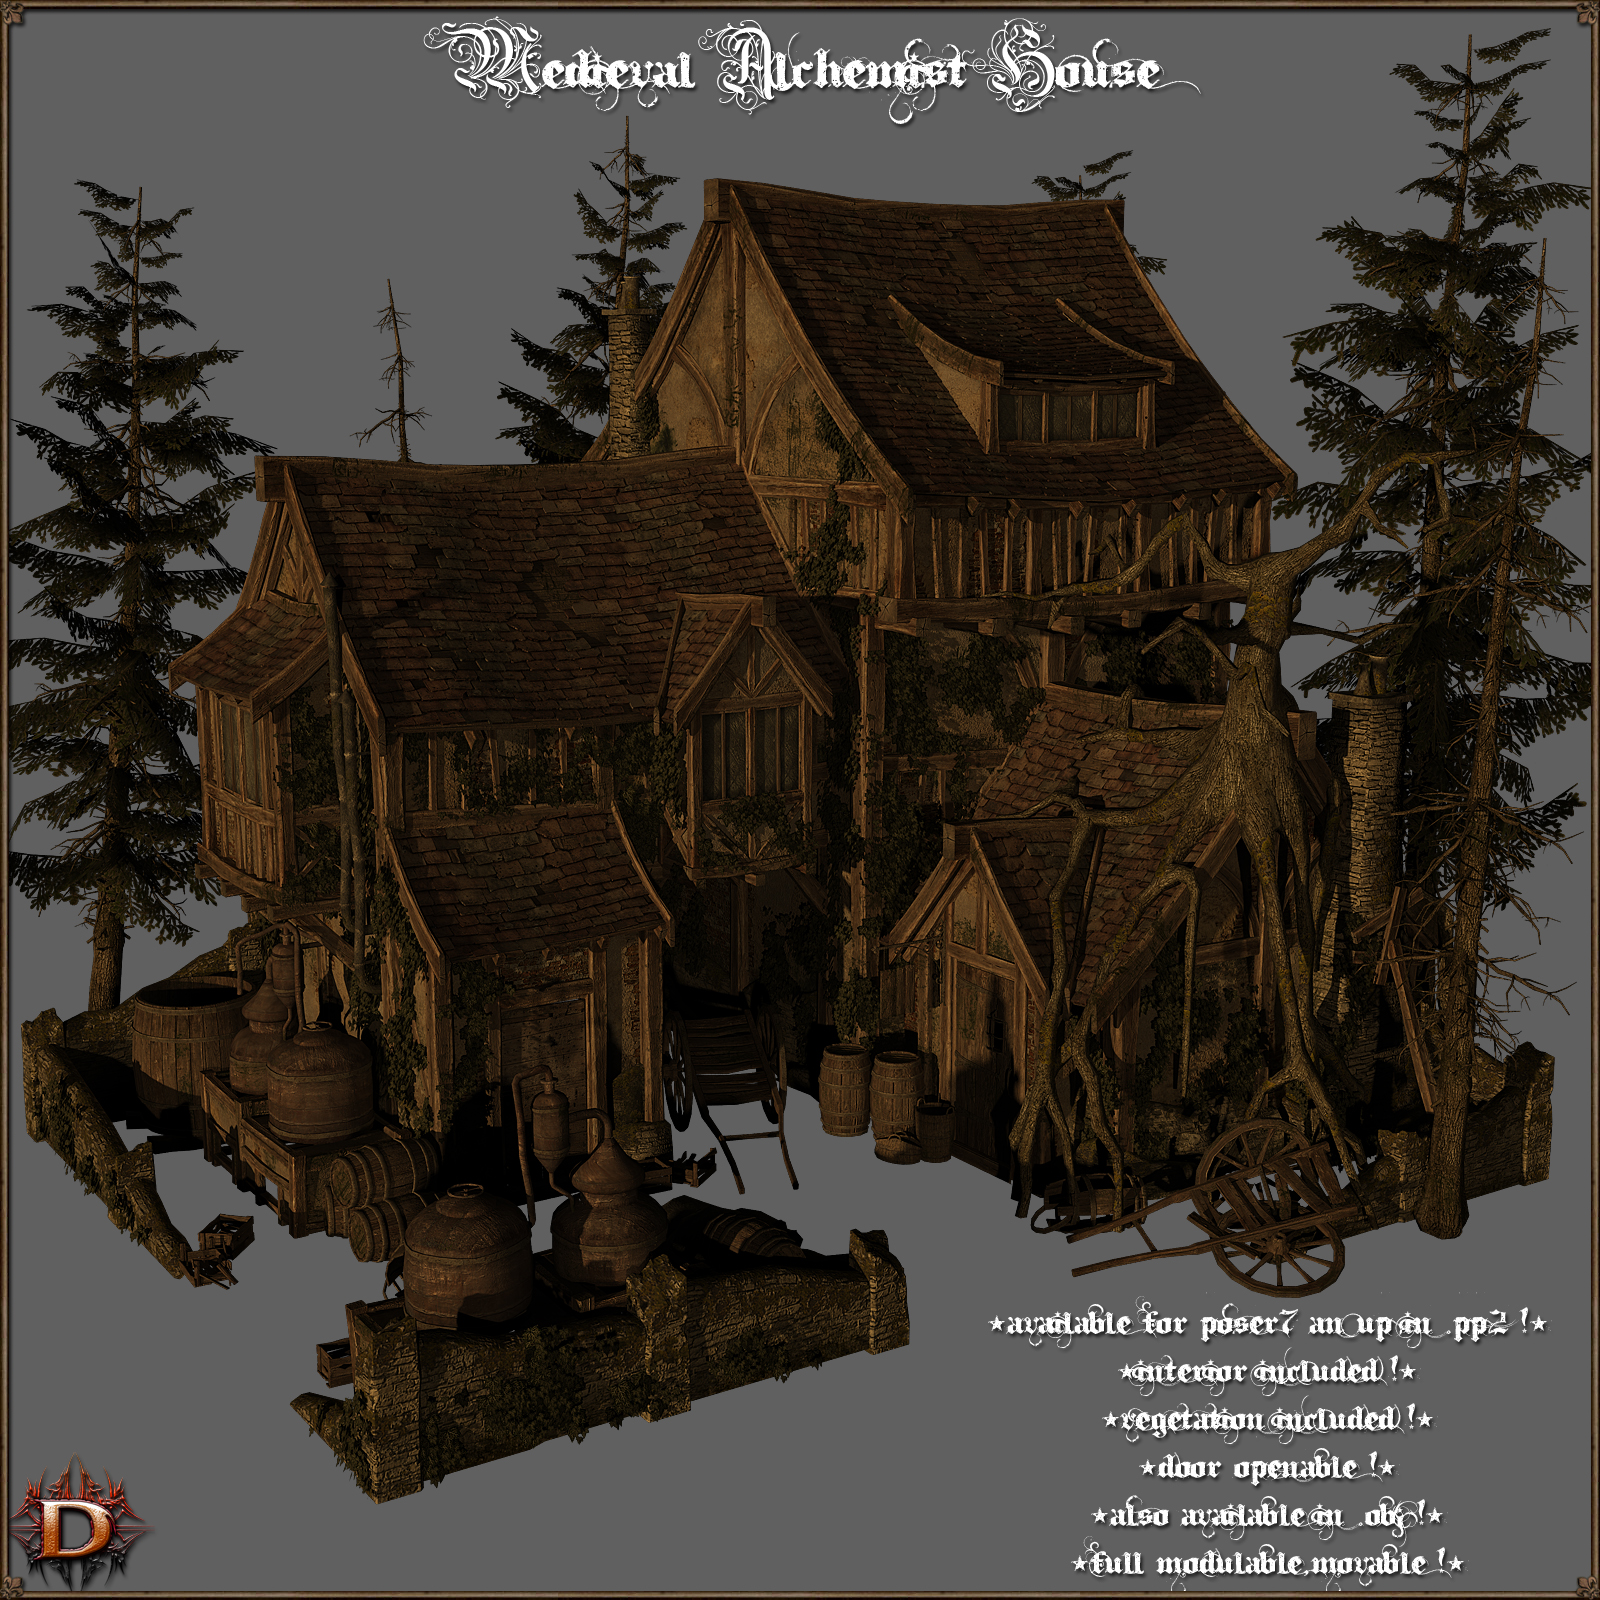 Medieval_Alchemist_House - Extended License